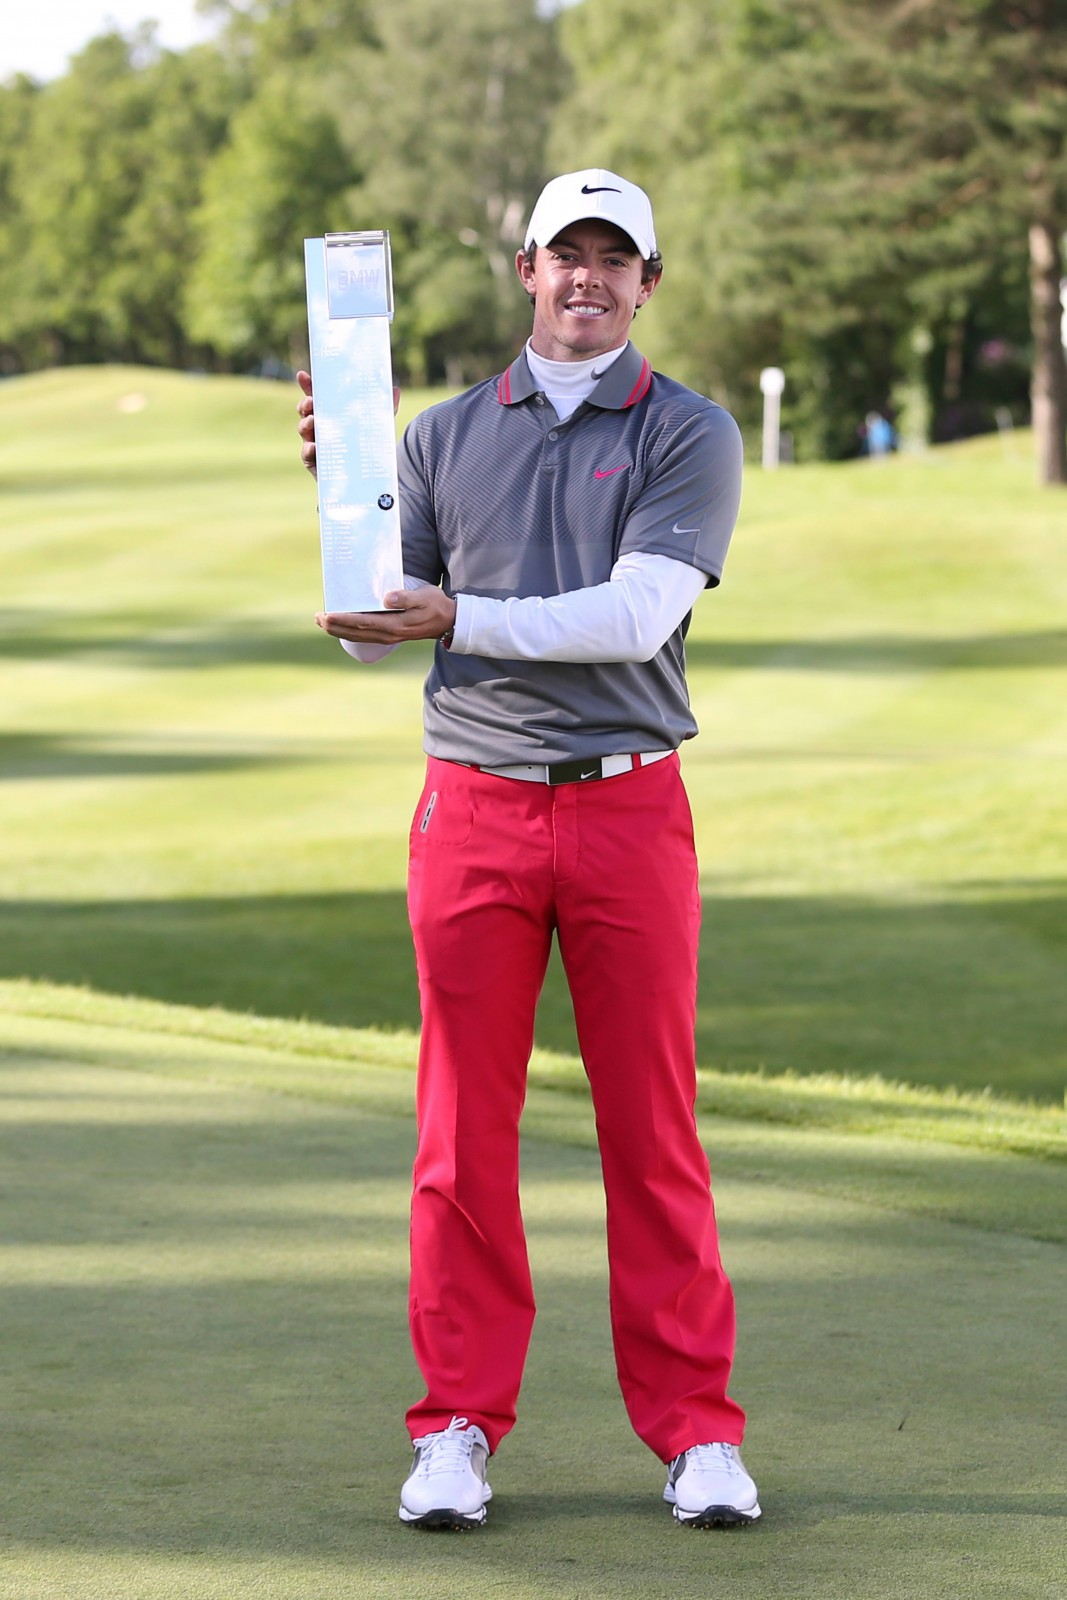 McIlroy is looking to repeat his win of 2014 at this week's BMW PGA Championship